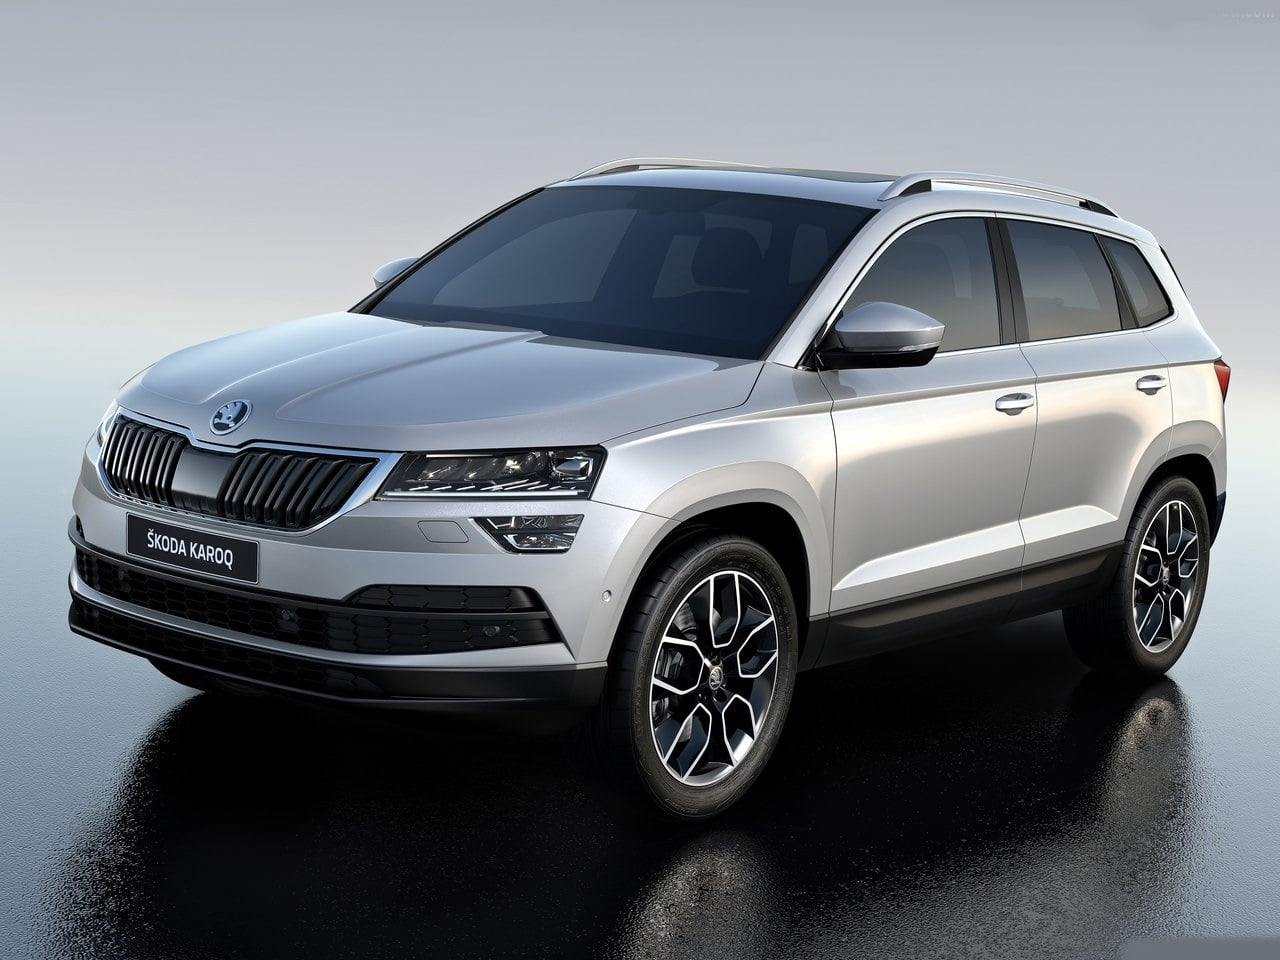 Skoda Karoq Suv India Launch Date Price Specifications Images